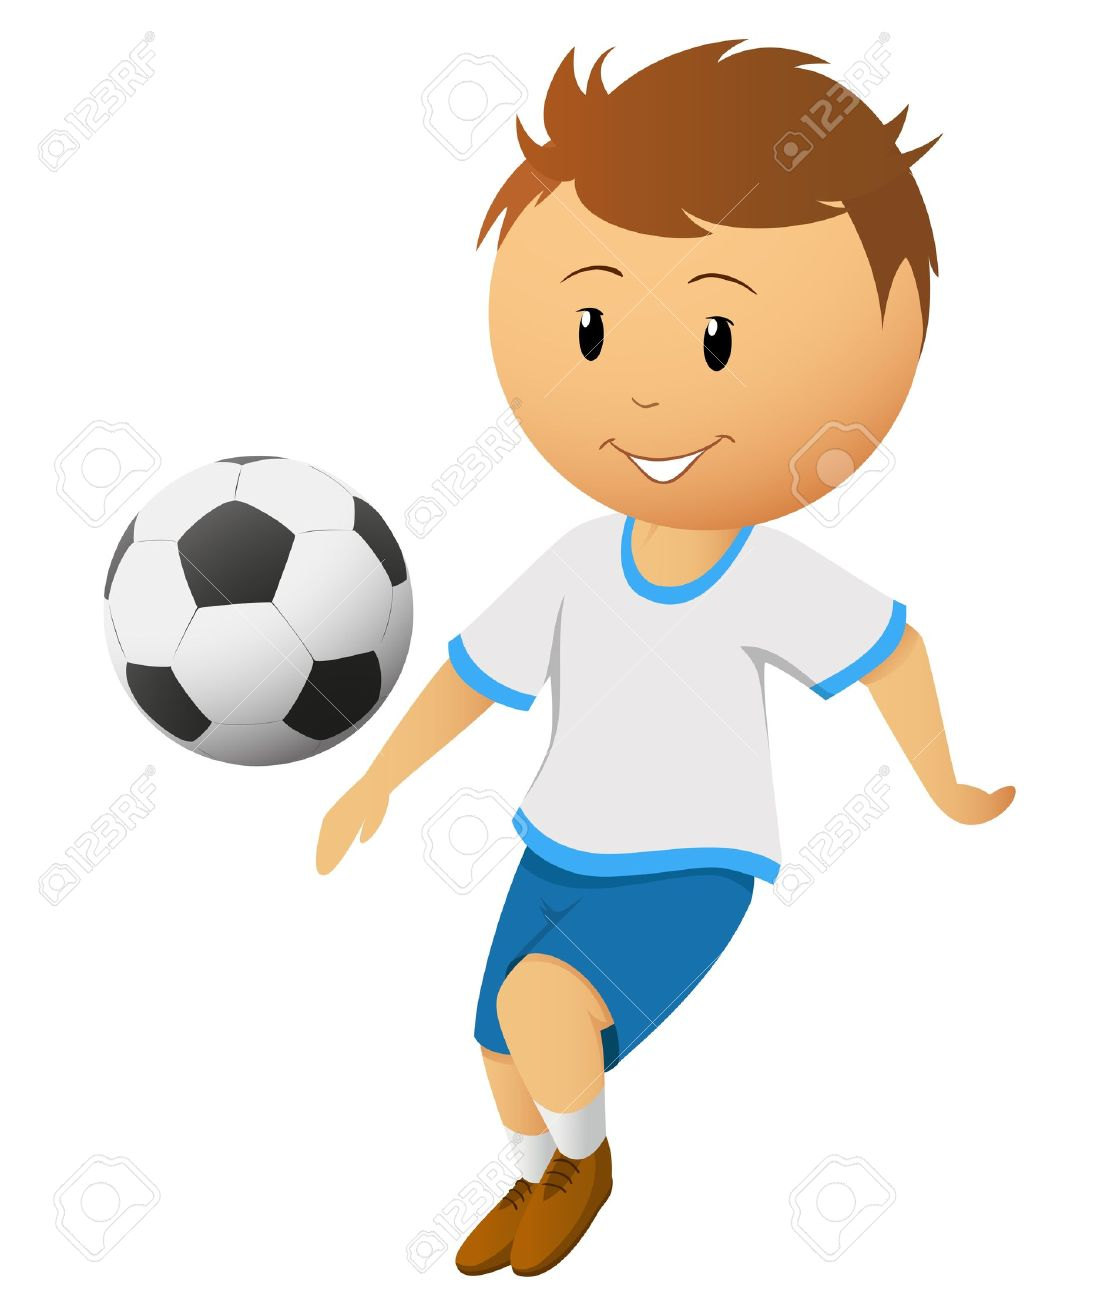 Clipart soccer player no ball picture download Cartoon Footballer Or Soccer Player Play With Ball Isolated On ... picture download